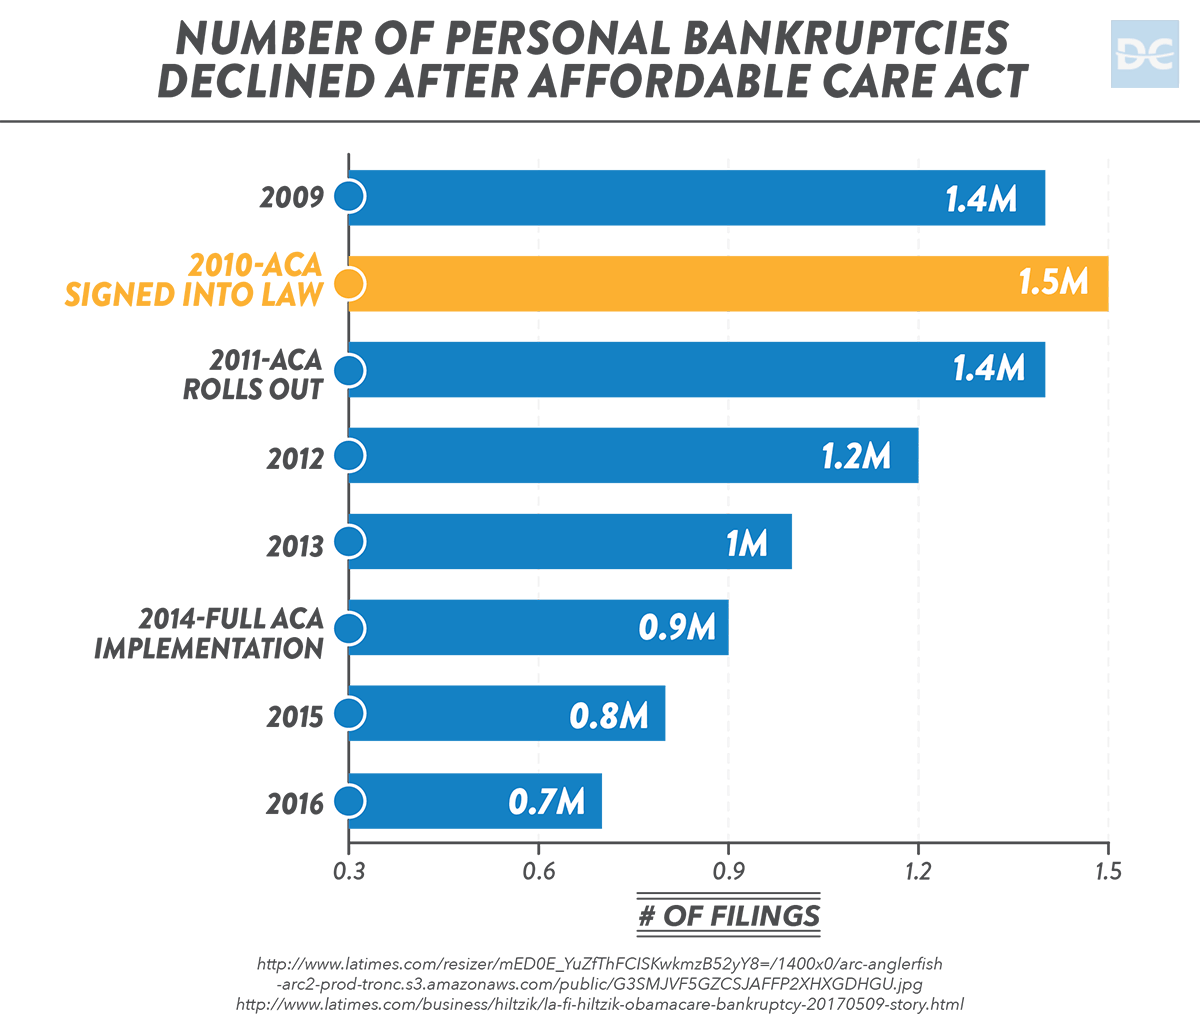 Number of Personal Bankruptcies Declined from 2009-2016